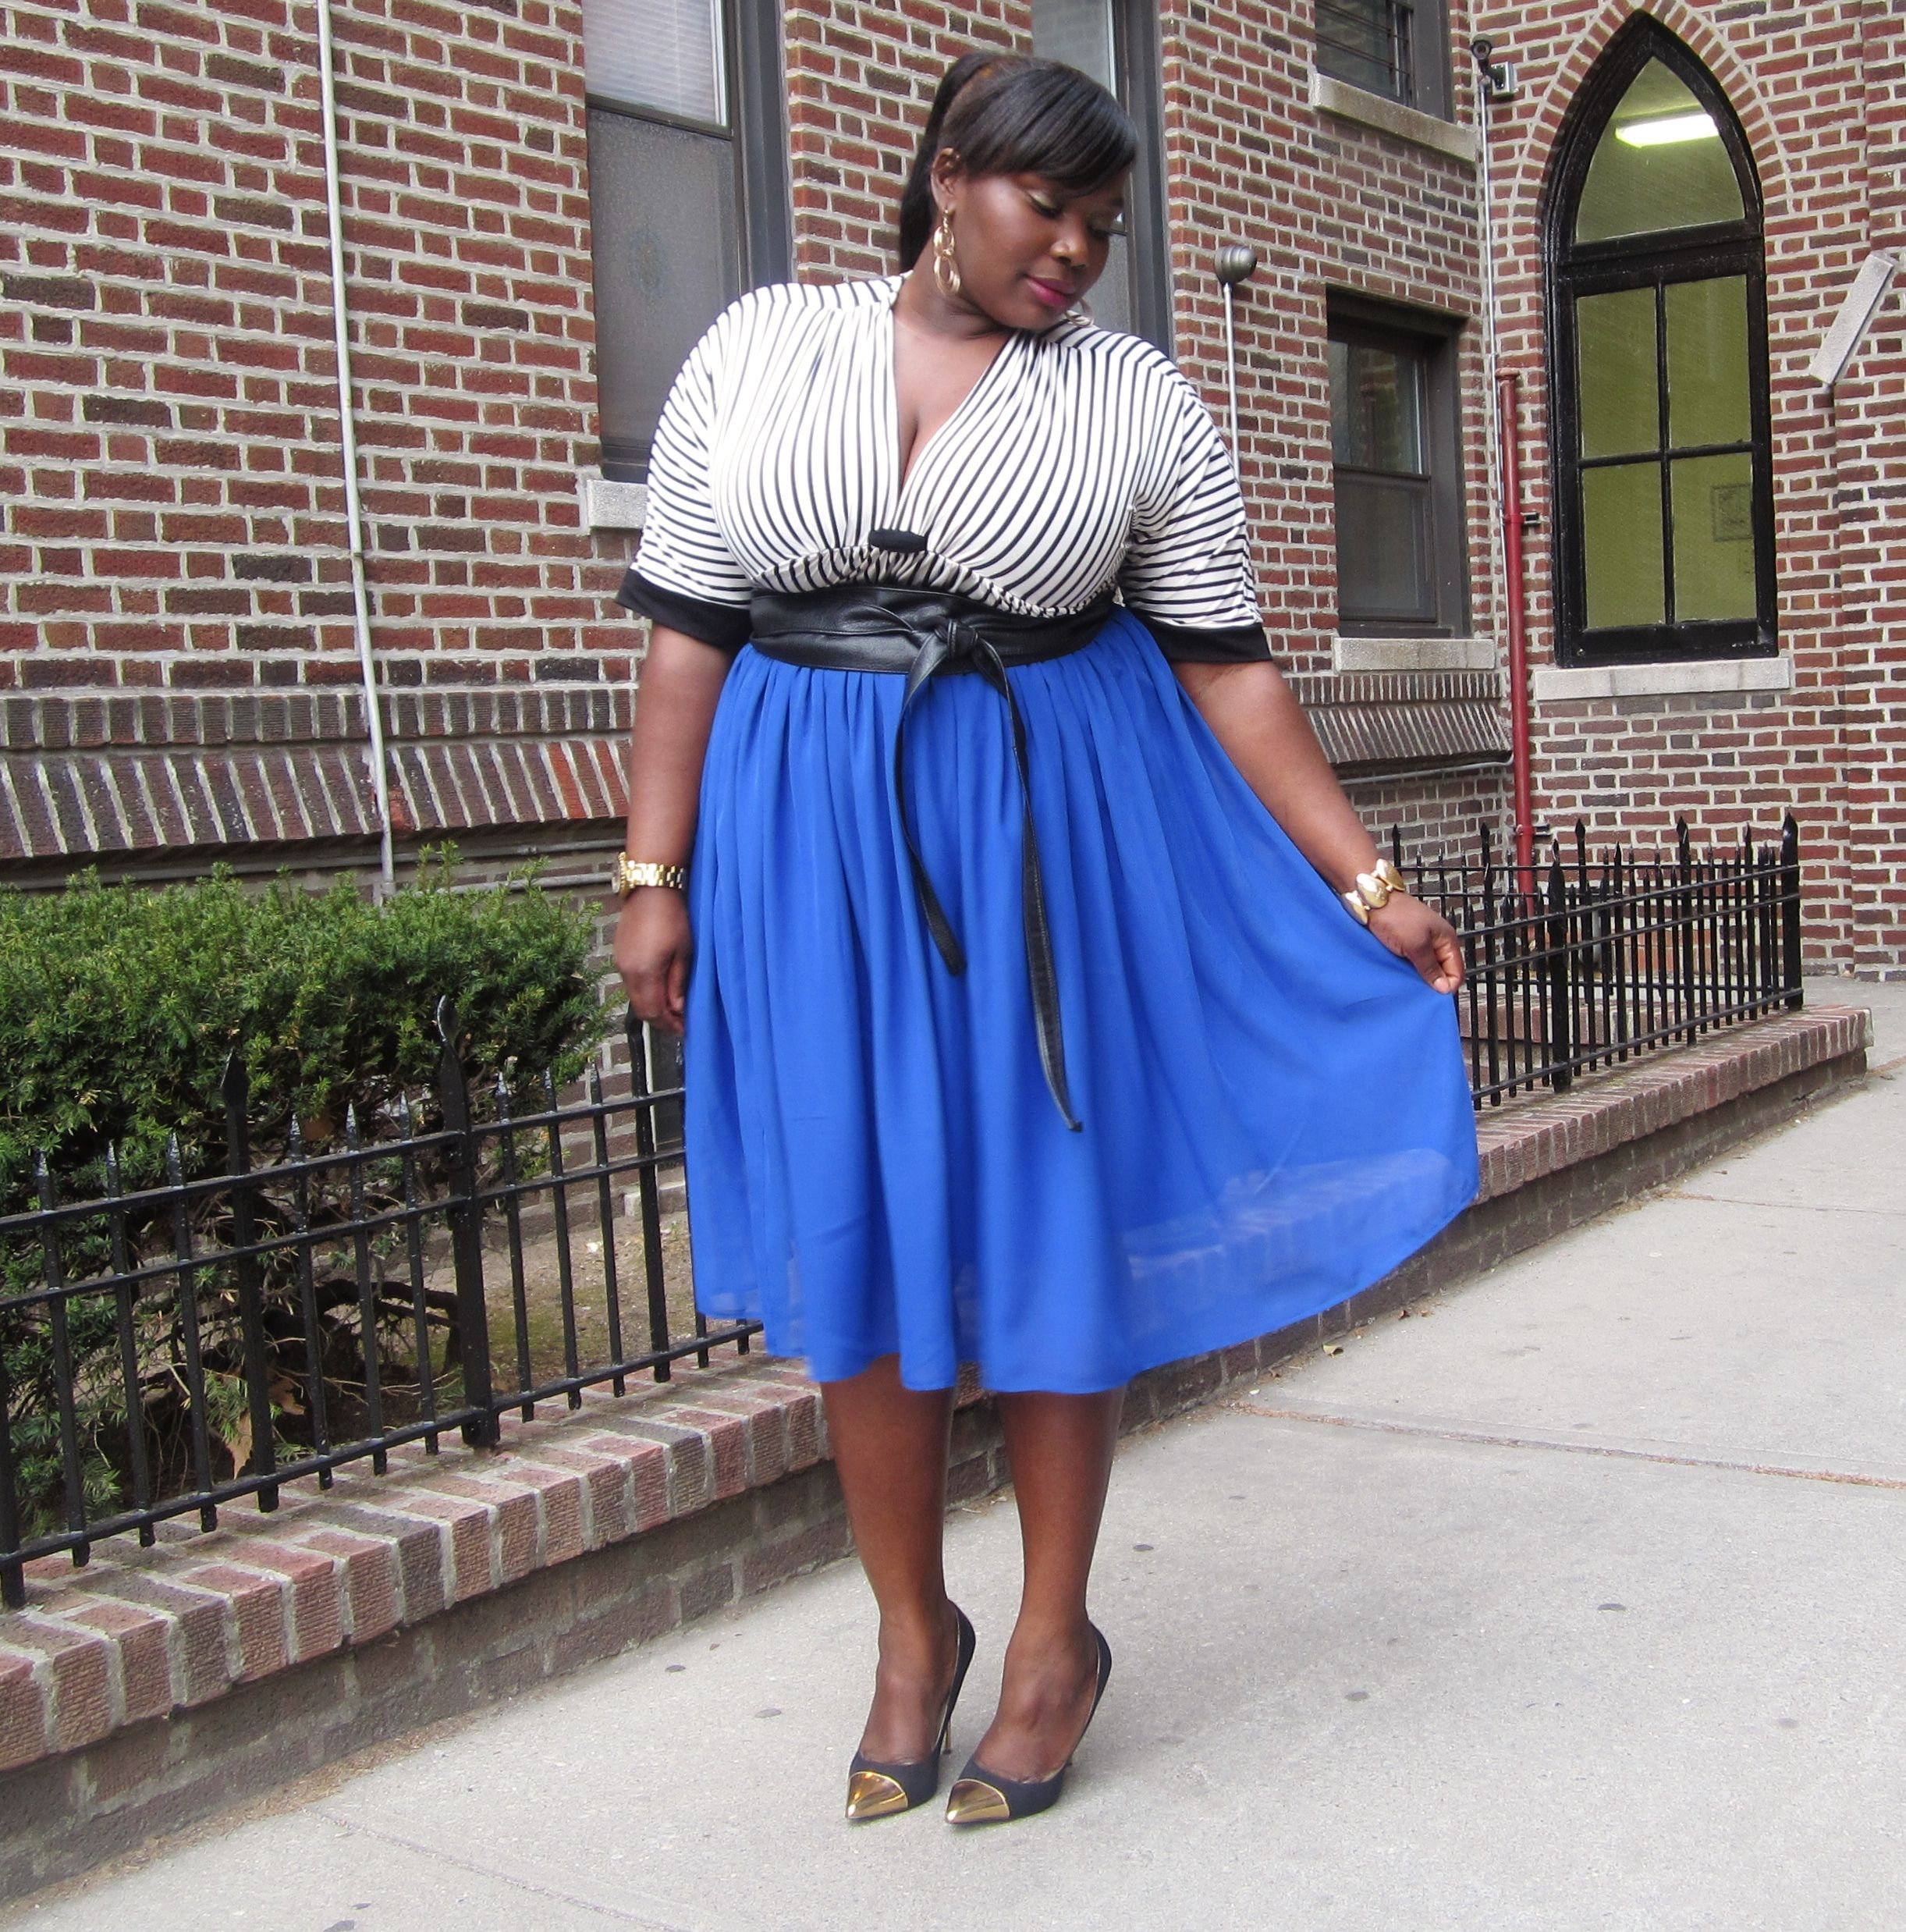 plus size dress zulily jobs | best dress ideas | pinterest | fashion